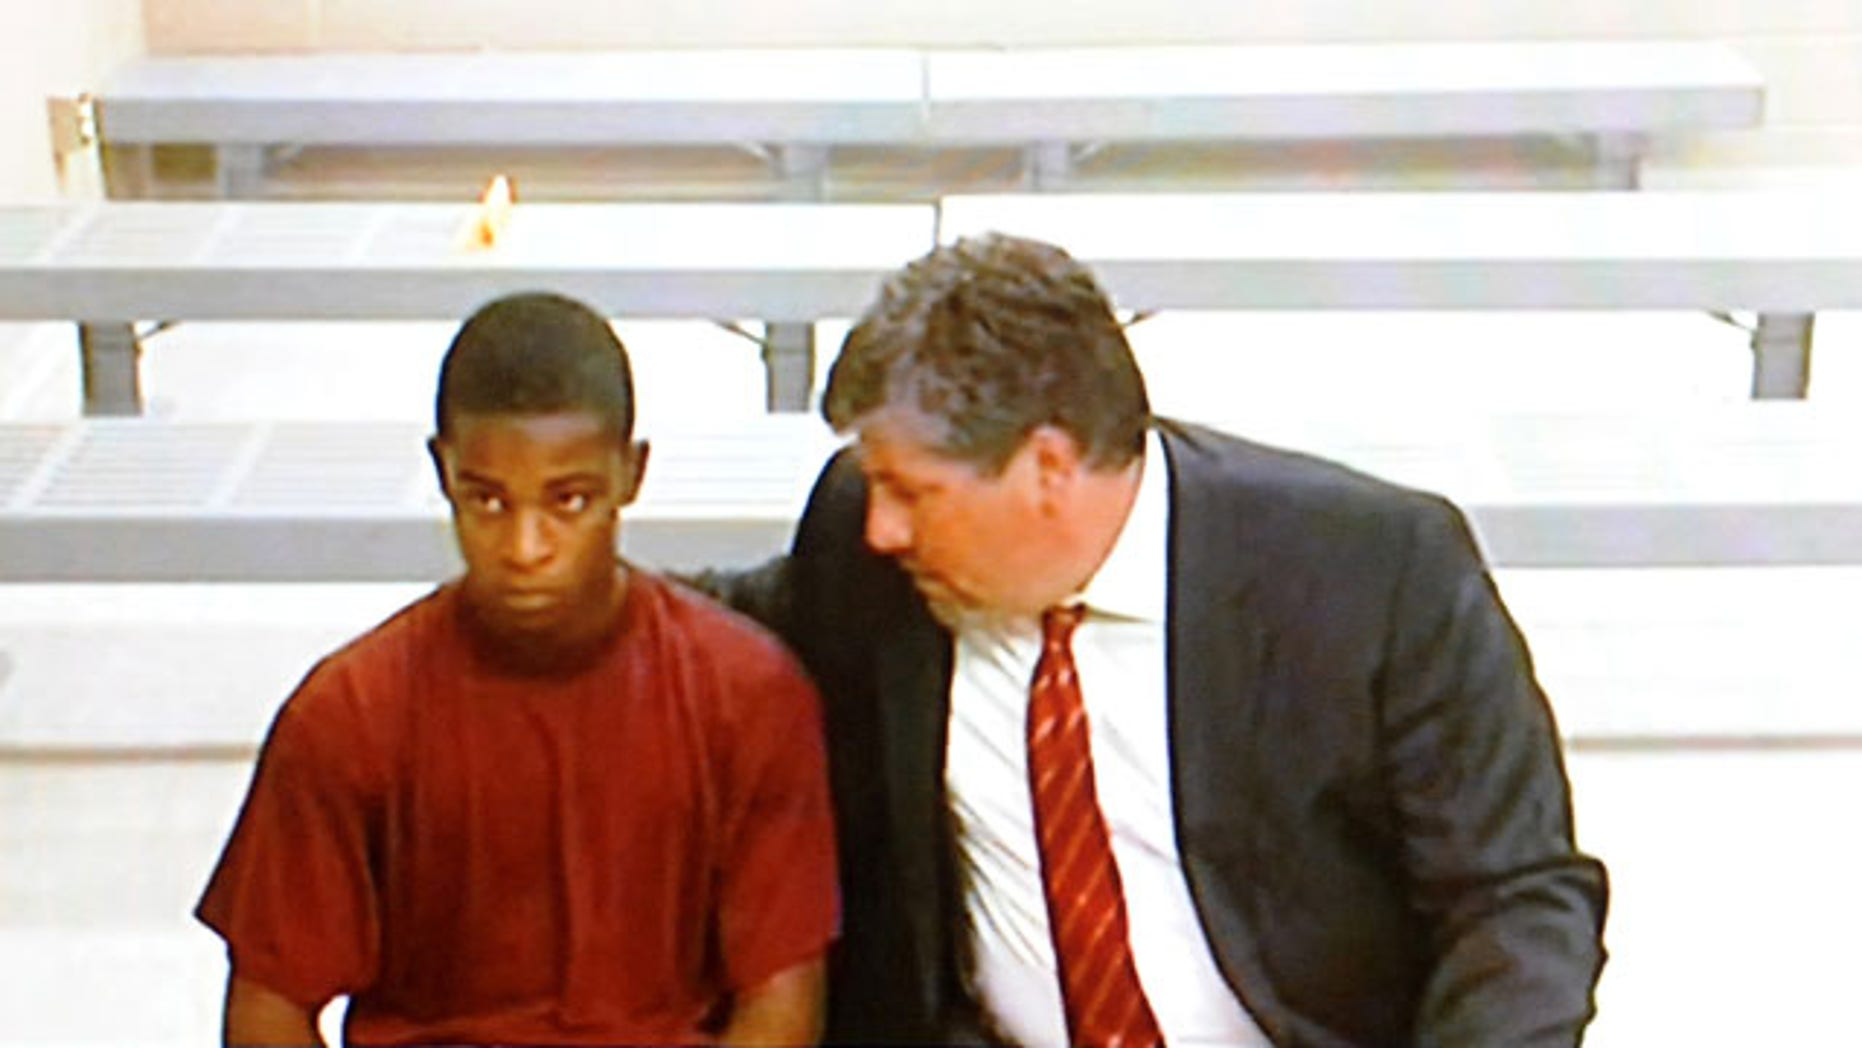 August 26, 2013: Demetrius Glenn, left, a teen that allegedly took part in the robbery and beating of 88-year-old World War II veteran Delbert Belton, listens to his lawyer, Christian J. Phelps, before a first appearance via video teleconference in District Court in Spokane, Wash. Glenn, who will be charged as an adult, is charged with first-degree murder and first-degree robbery and was ordered held on $2 million bail. (AP Photo/The Spokesman-Review)